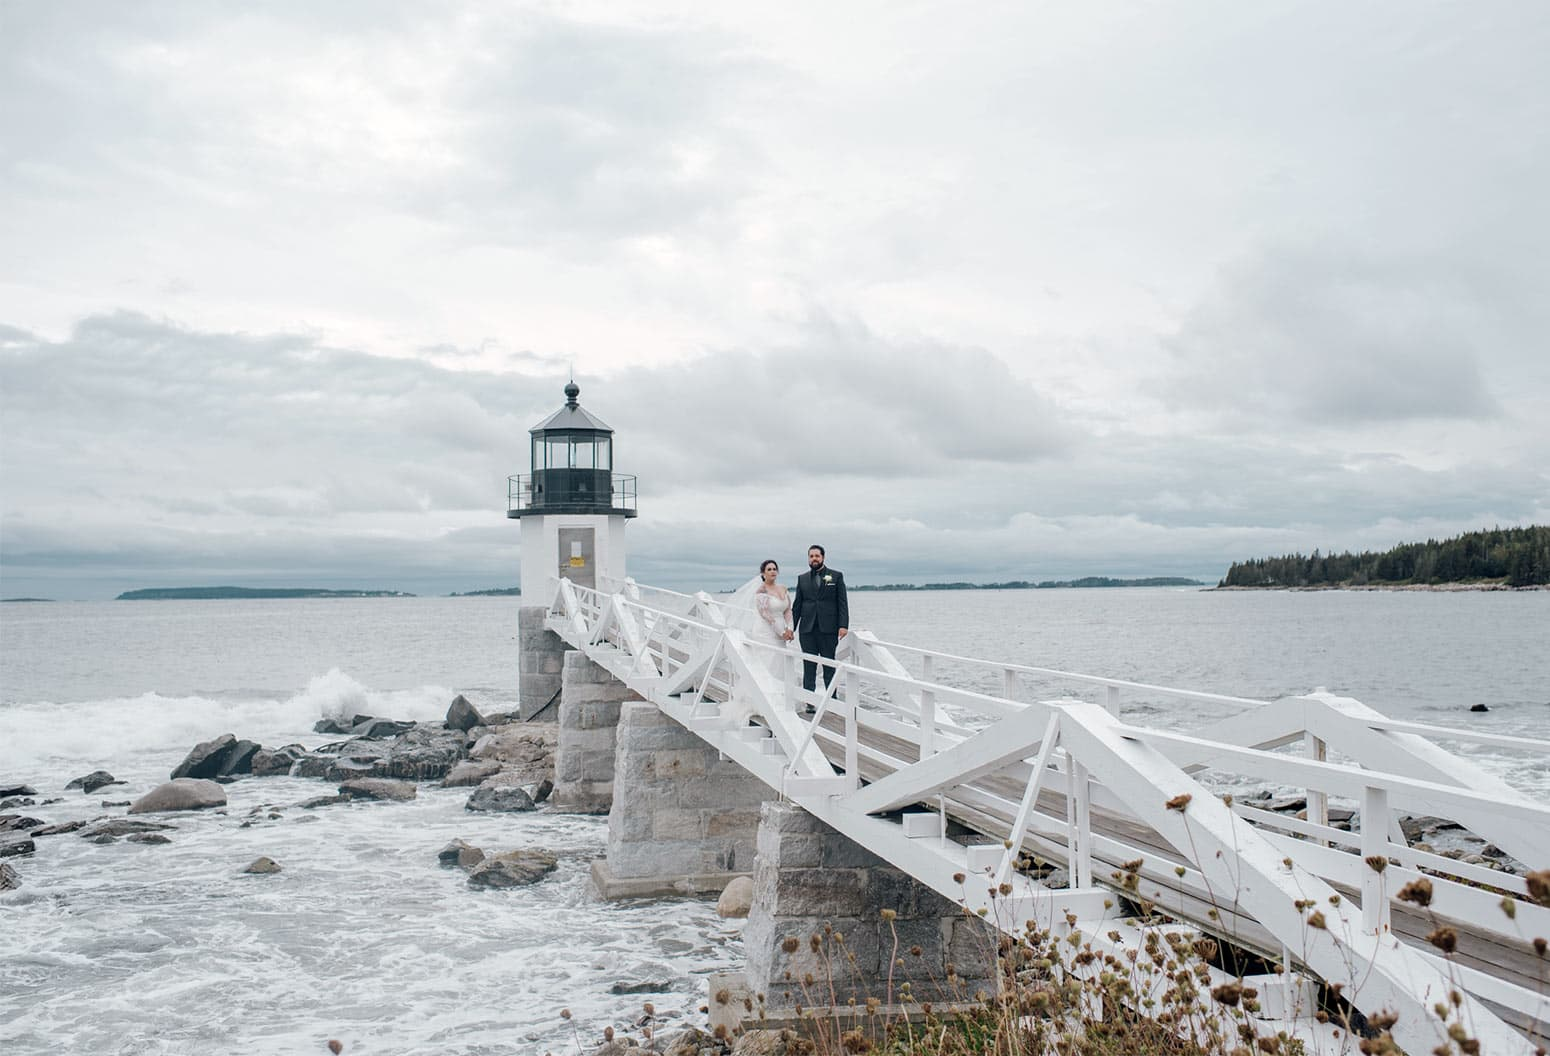 Couple on the pier by a lighthouse